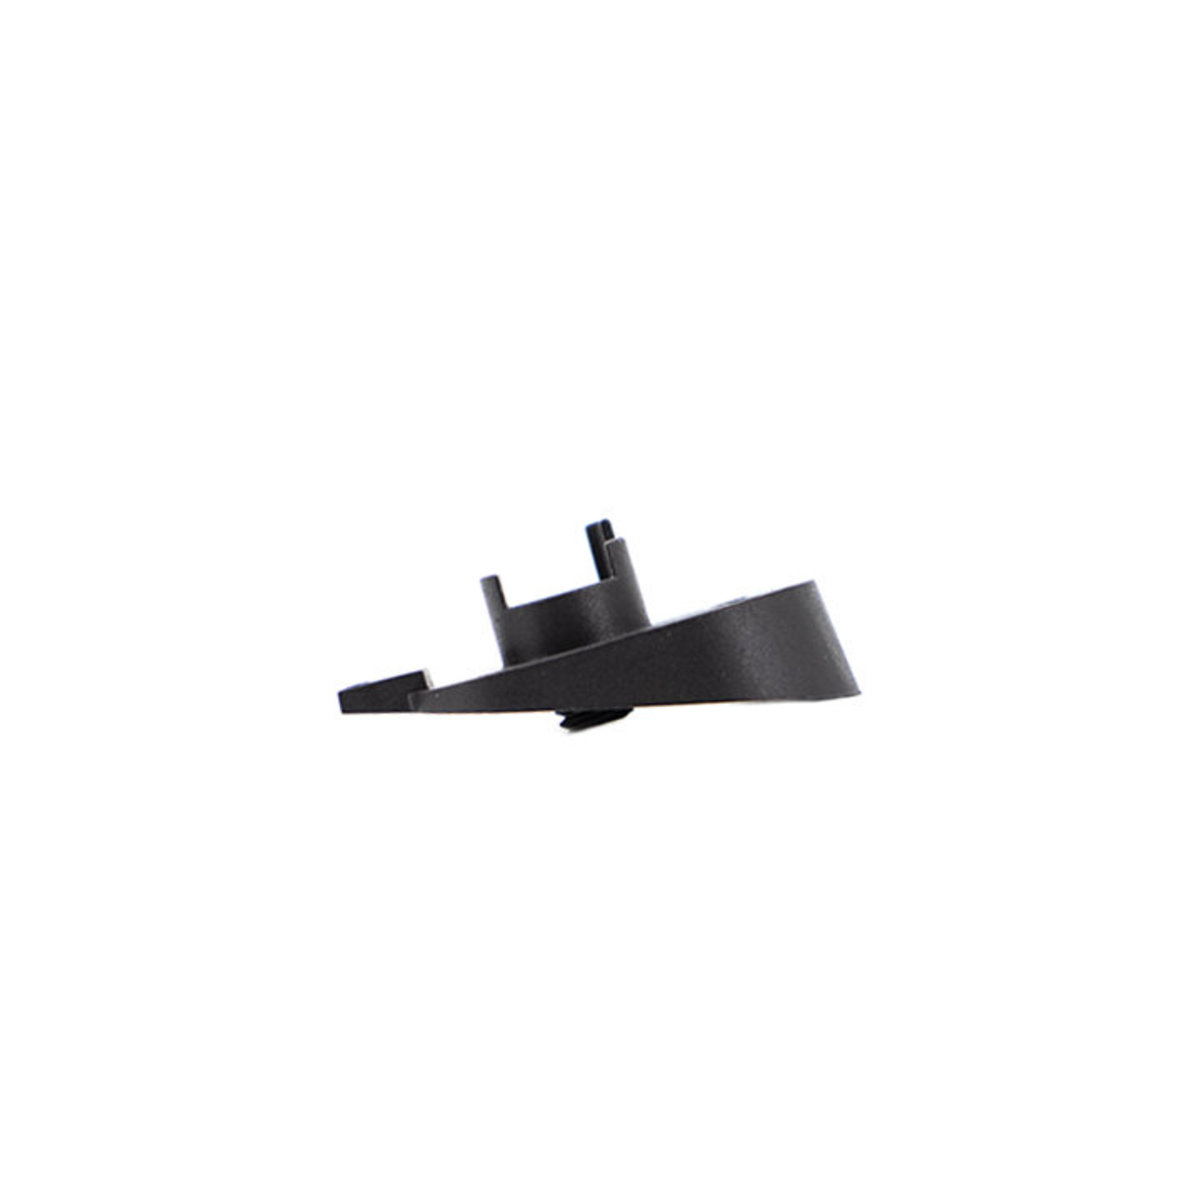 View larger image of Valken Vented Heat Sink Motor Grip Plate for M4 / M16 Series Airsoft AEGs